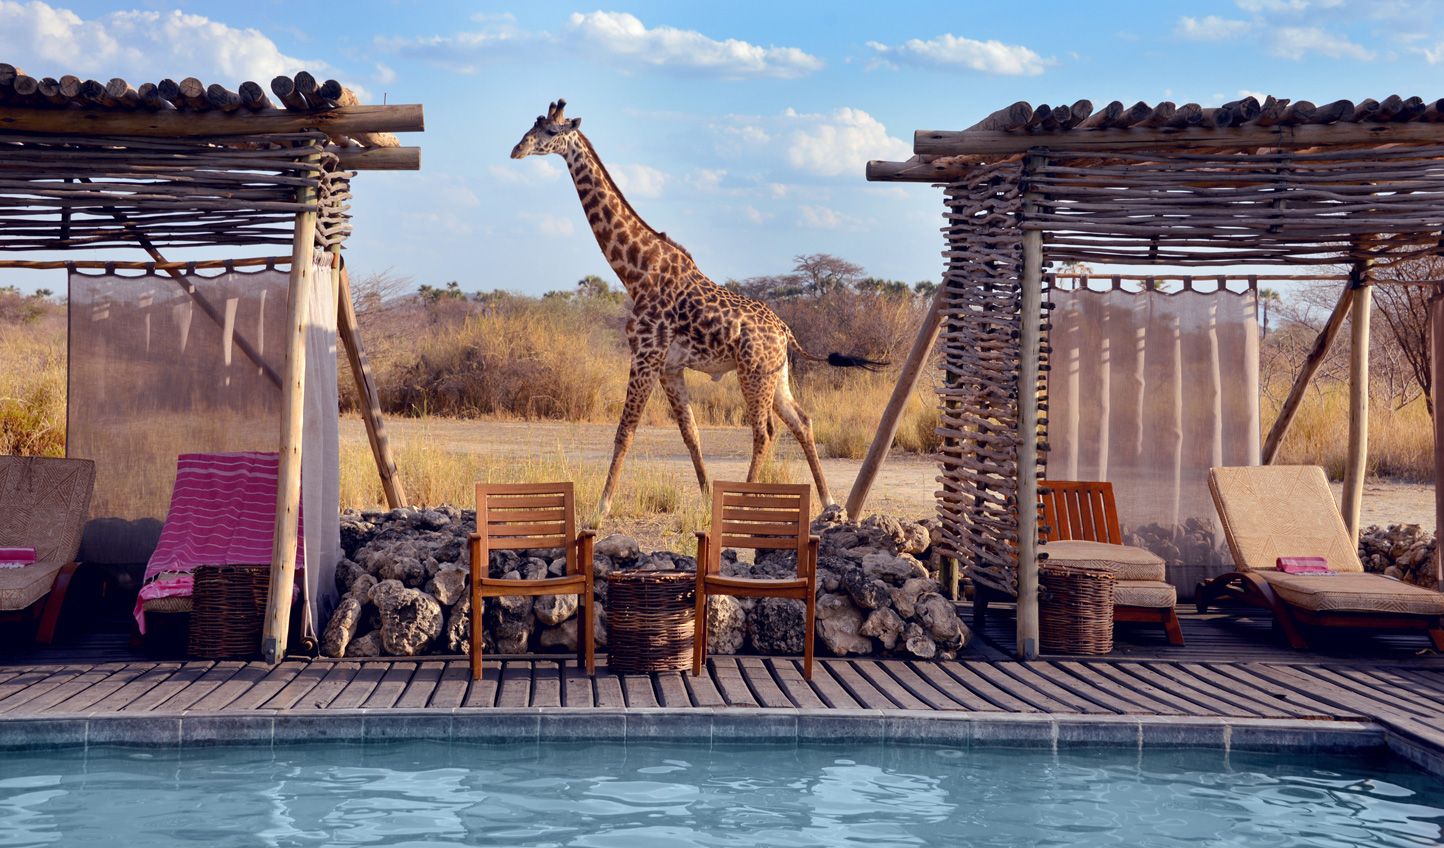 Swim a few laps with an audience of giraffes